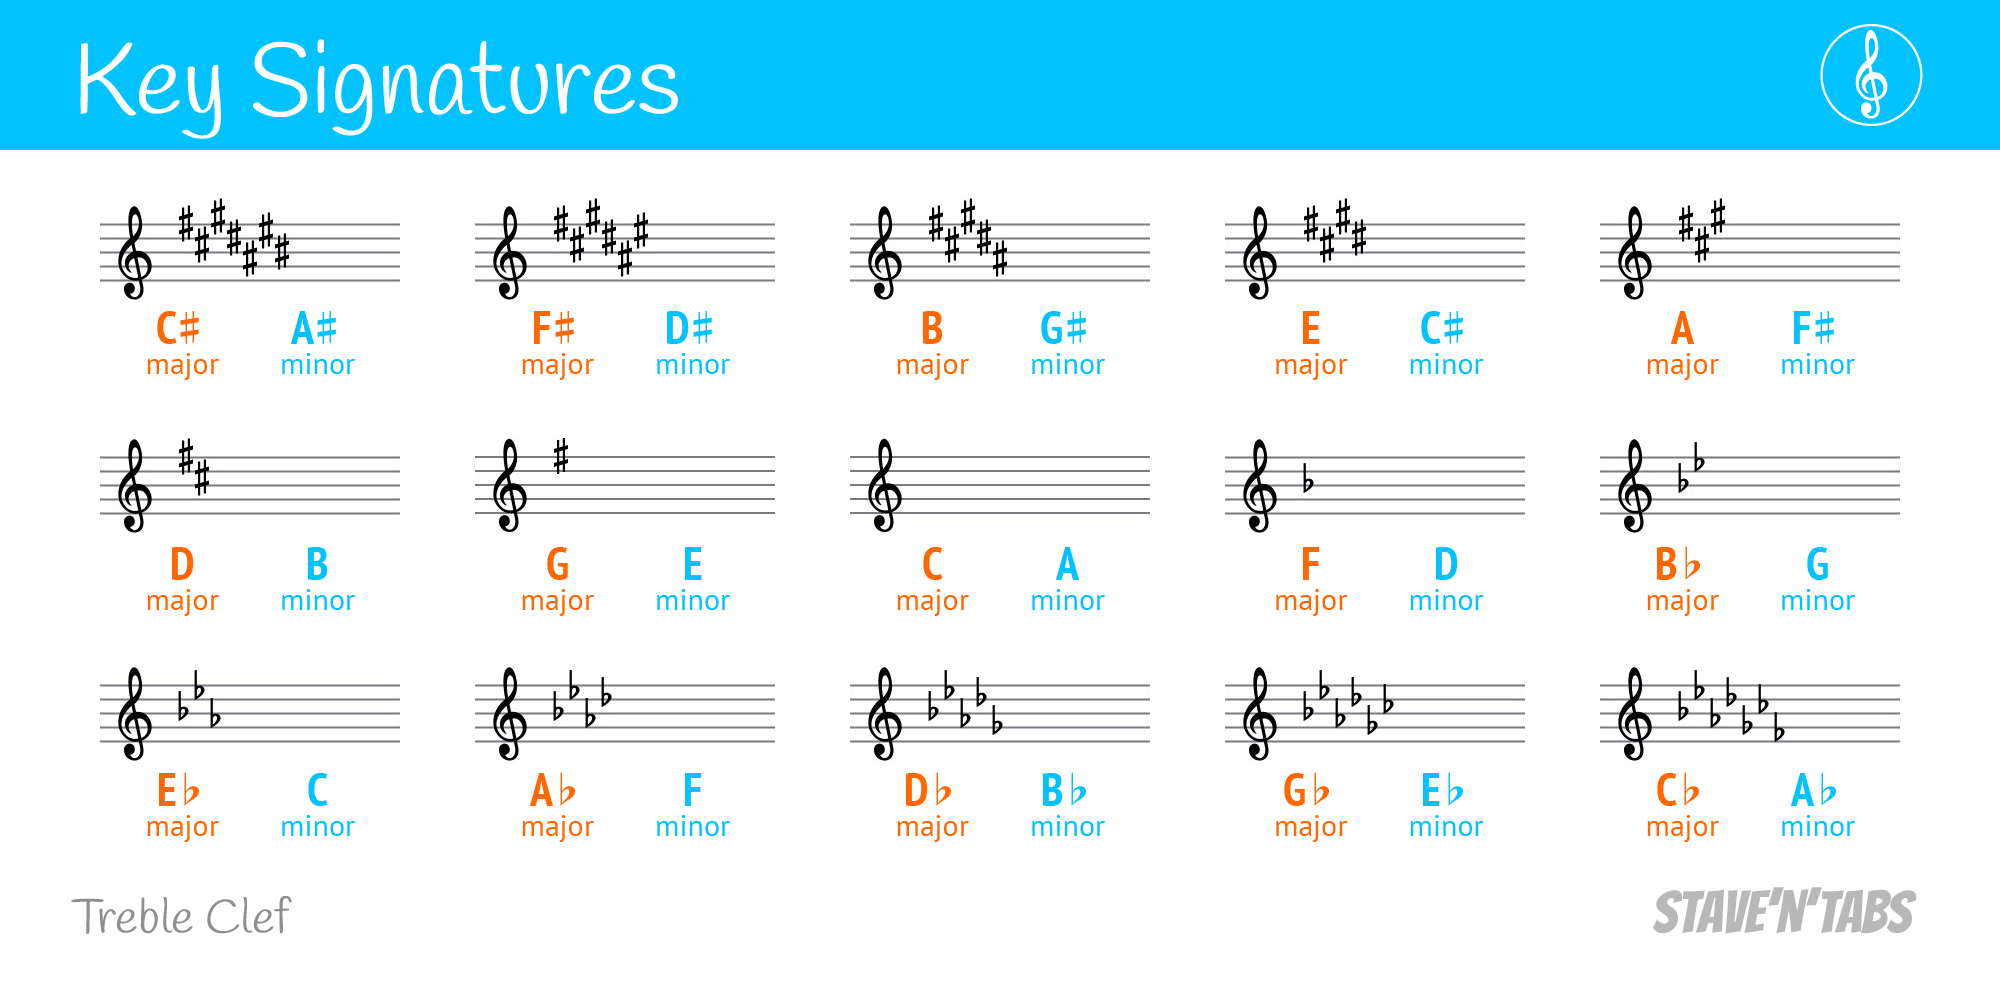 Key signatures in treble clef